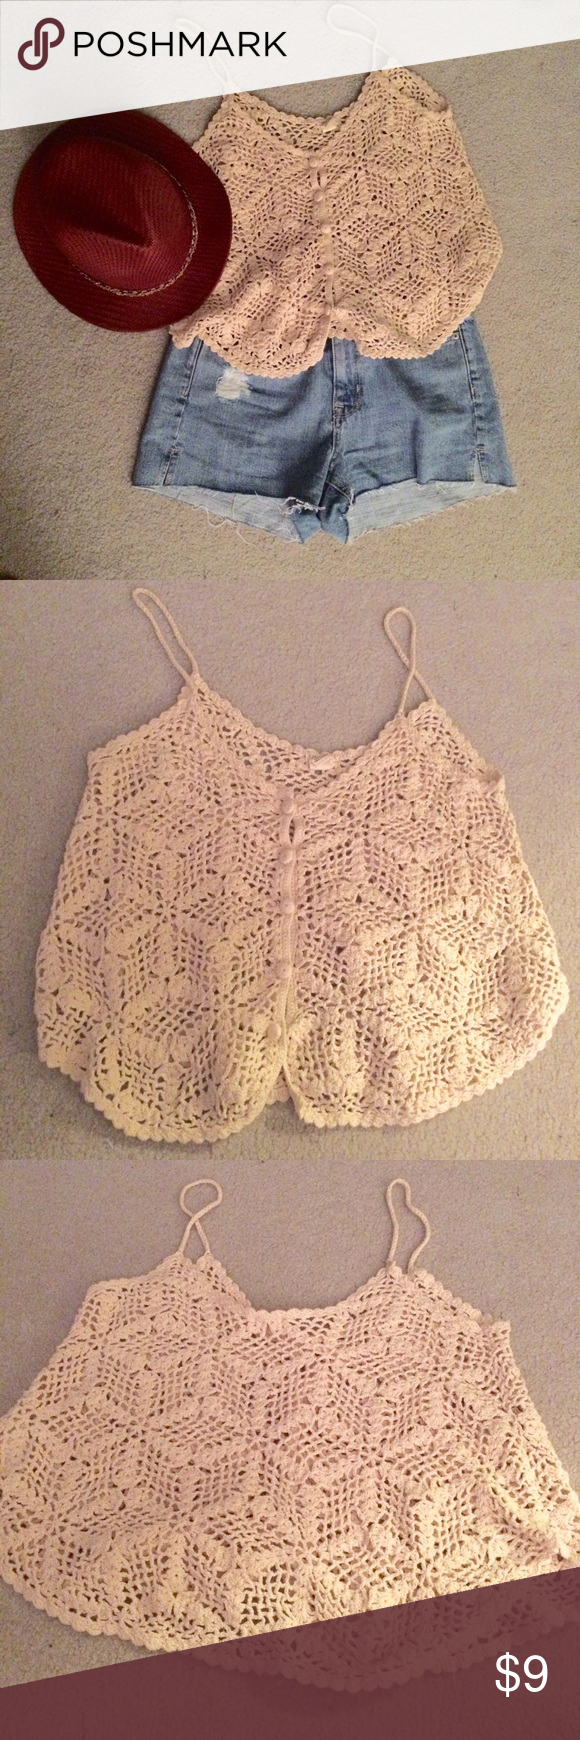 Forever 21 beige crochet crop top Sz m Swingy crochet perfect for Summer. Great festival top. Worn once. Great condition. Forever 21 Tops Crop Tops